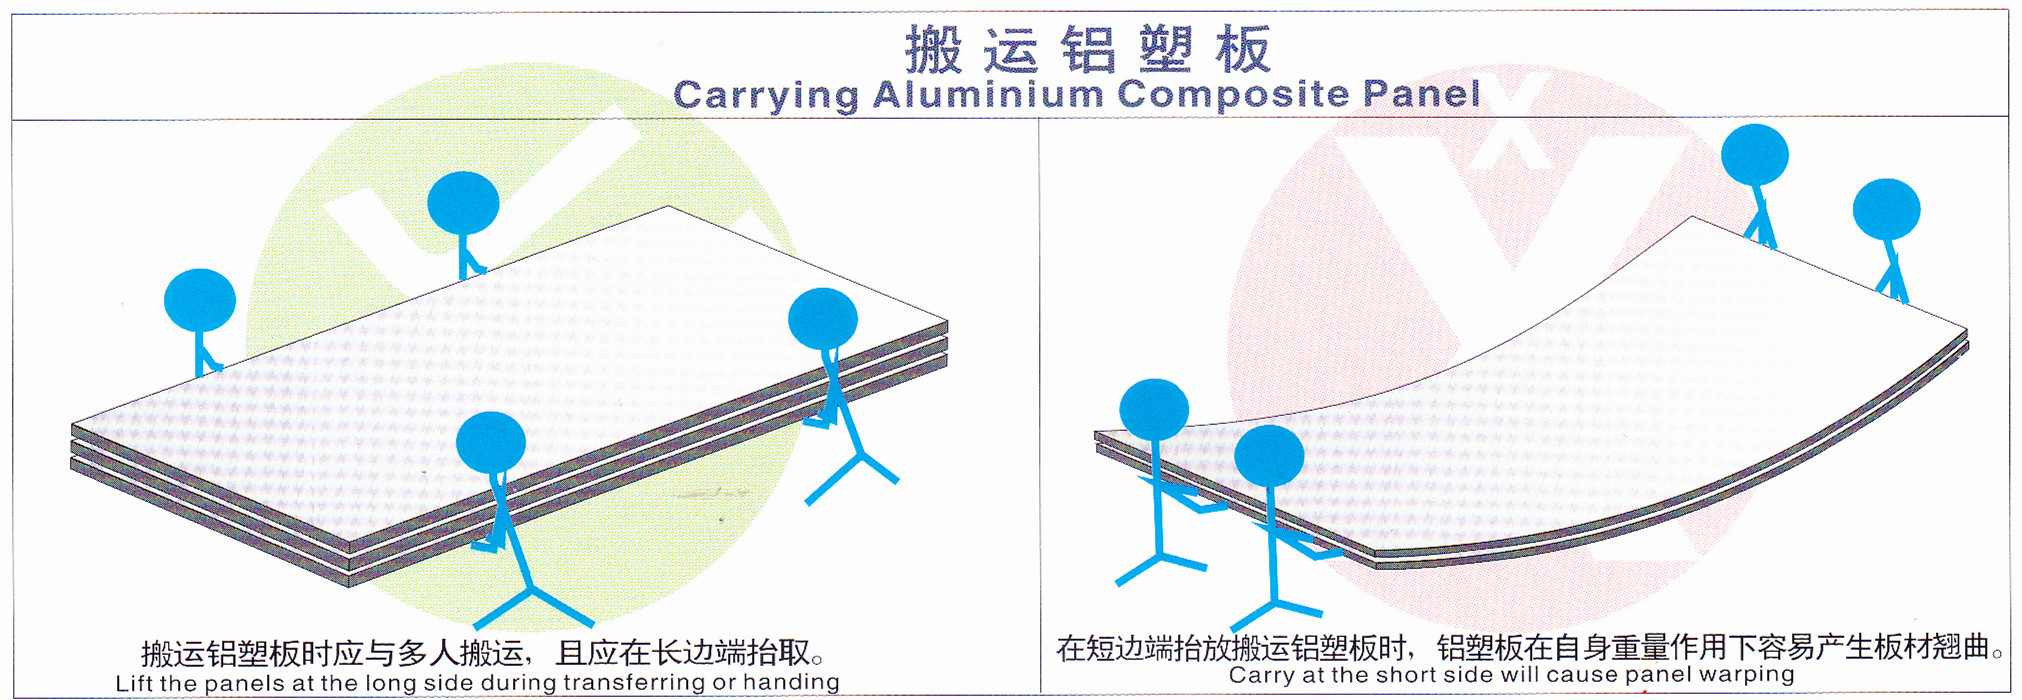 carrying aluminium composite panel.jpg